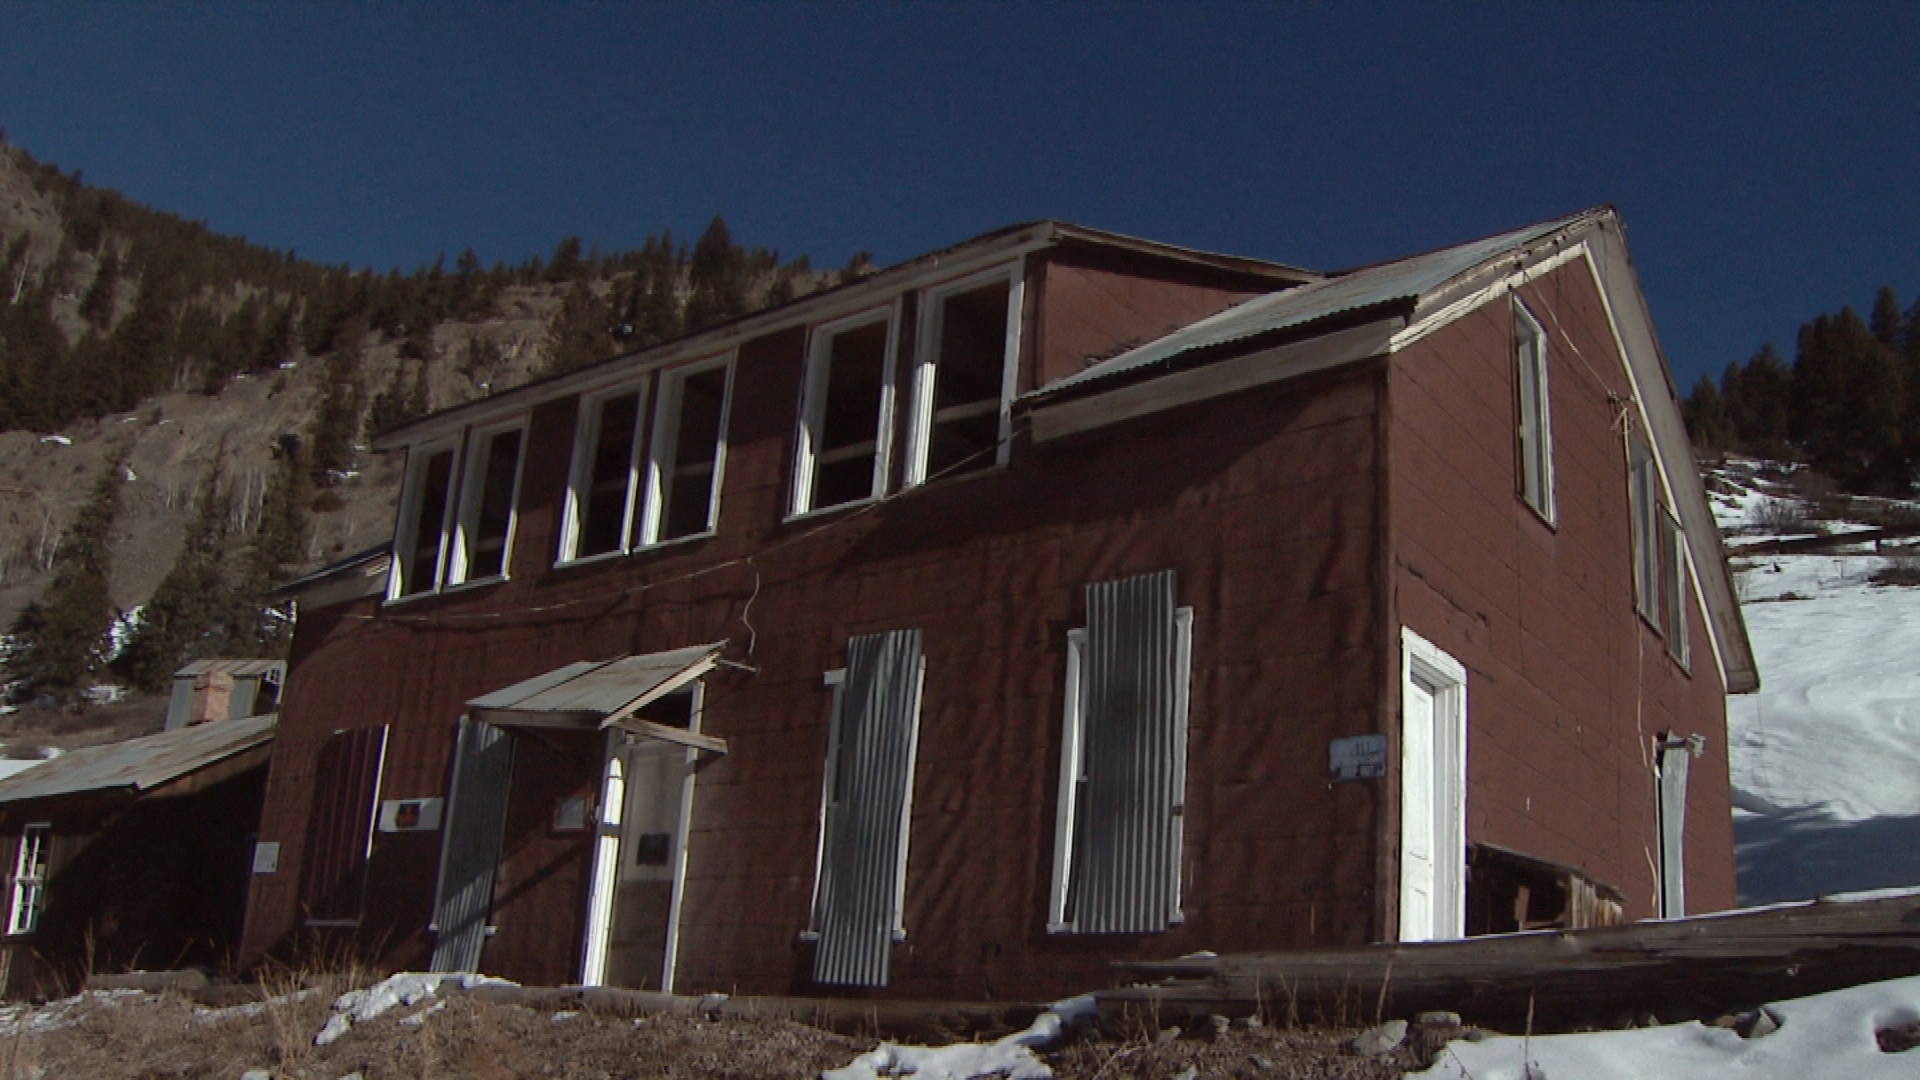 One of the miners' boarding houses. This one sat at the center of a large labor dispute when the mine operators forced the single miners to live in these houses, then deducted room and board fees from their pay (credit: CBS)